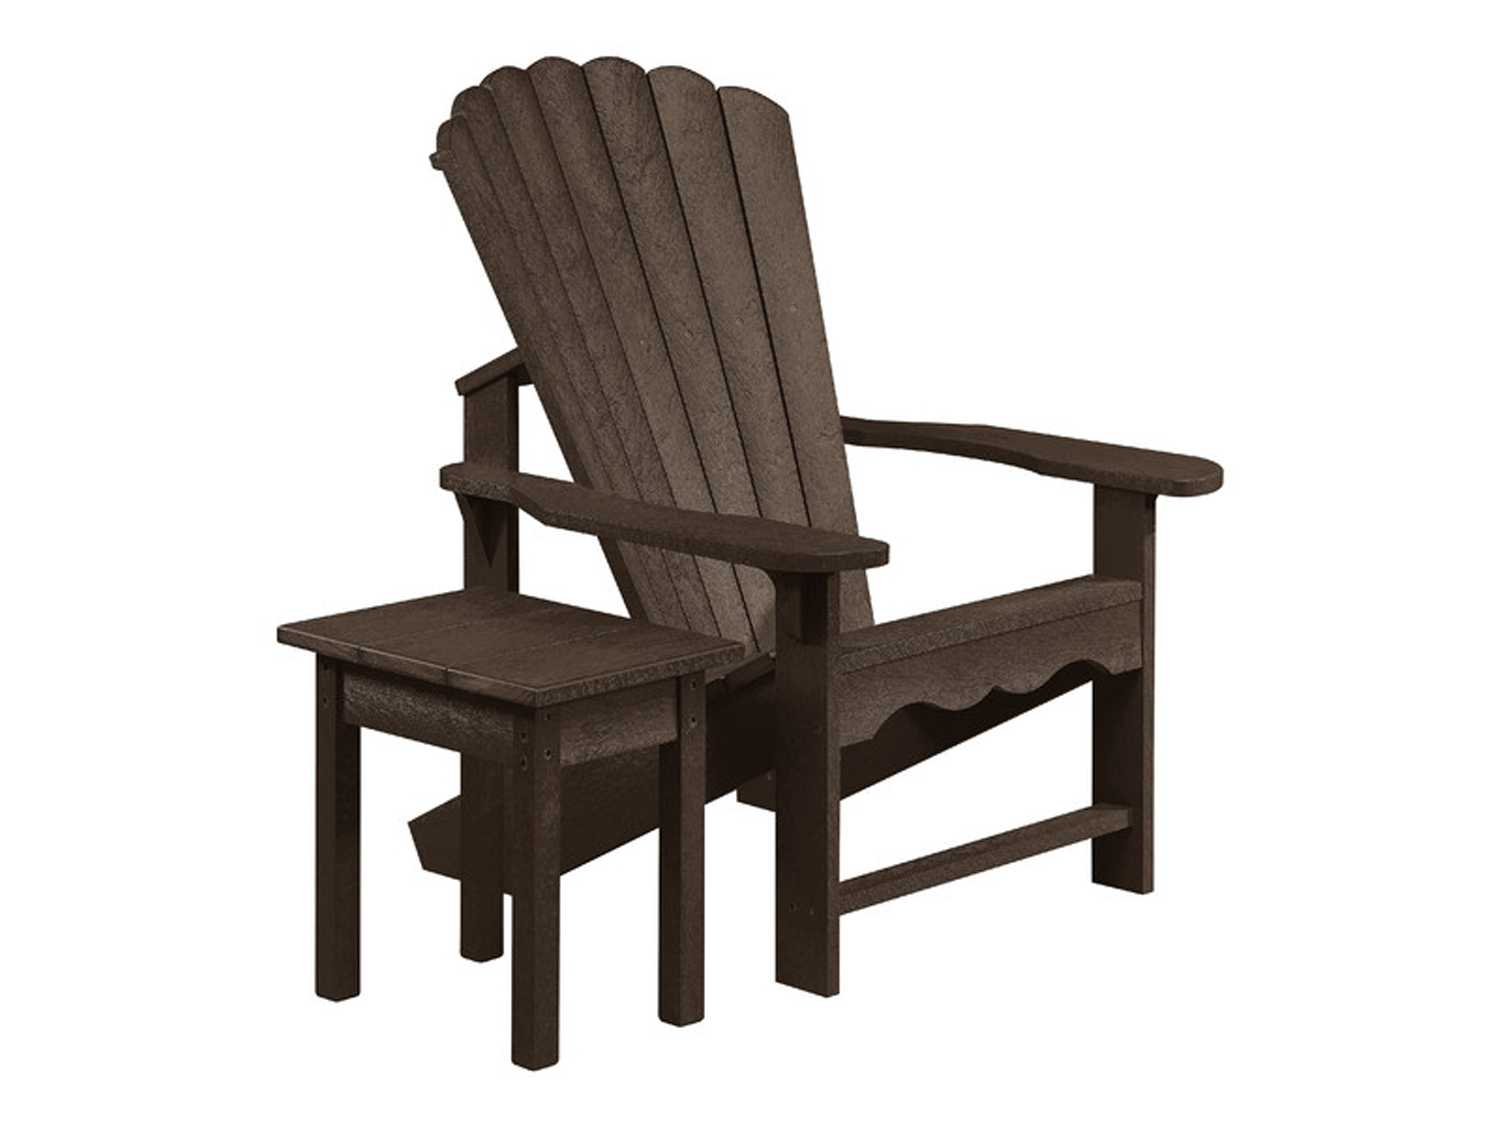 CR Plastic Generation Recycled Plastic Adirondack Chair with a Small Table  -> Petite Table Plastique